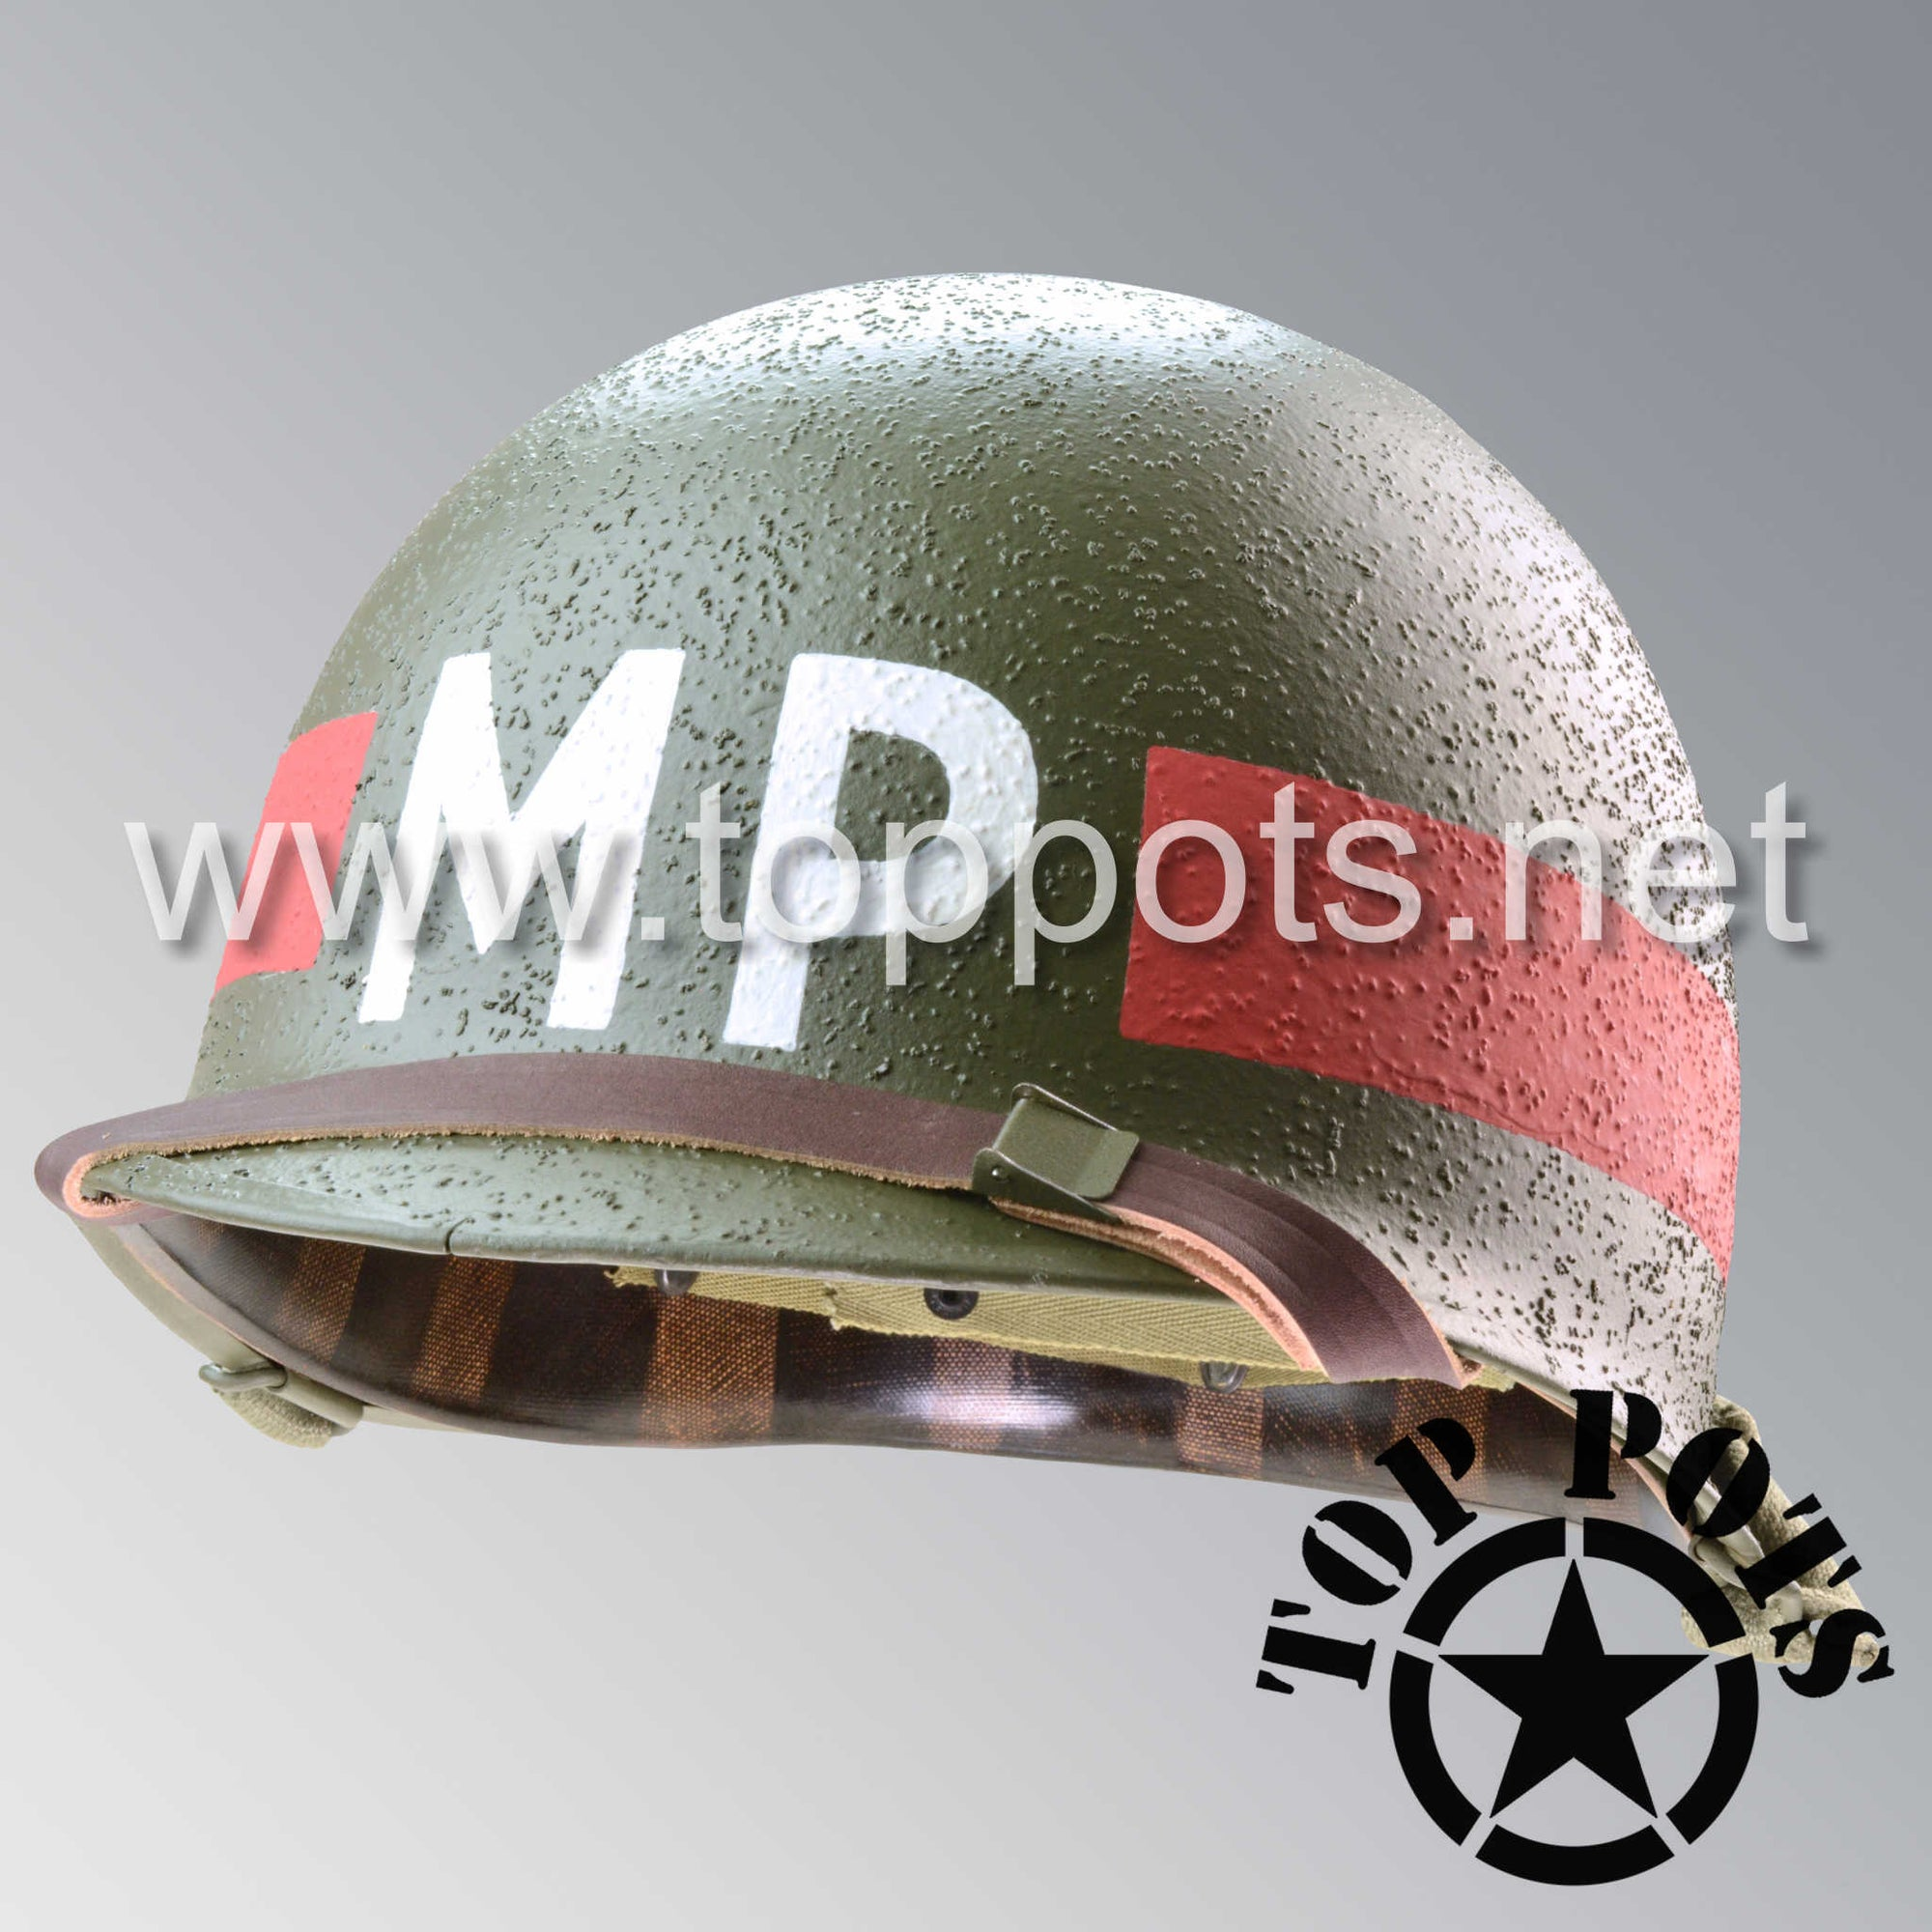 Image 1 of WWII US Army Restored Original M1 Infantry Helmet Swivel Bale Shell and Liner with Red Headquarter HQ MP Military Police Emblem